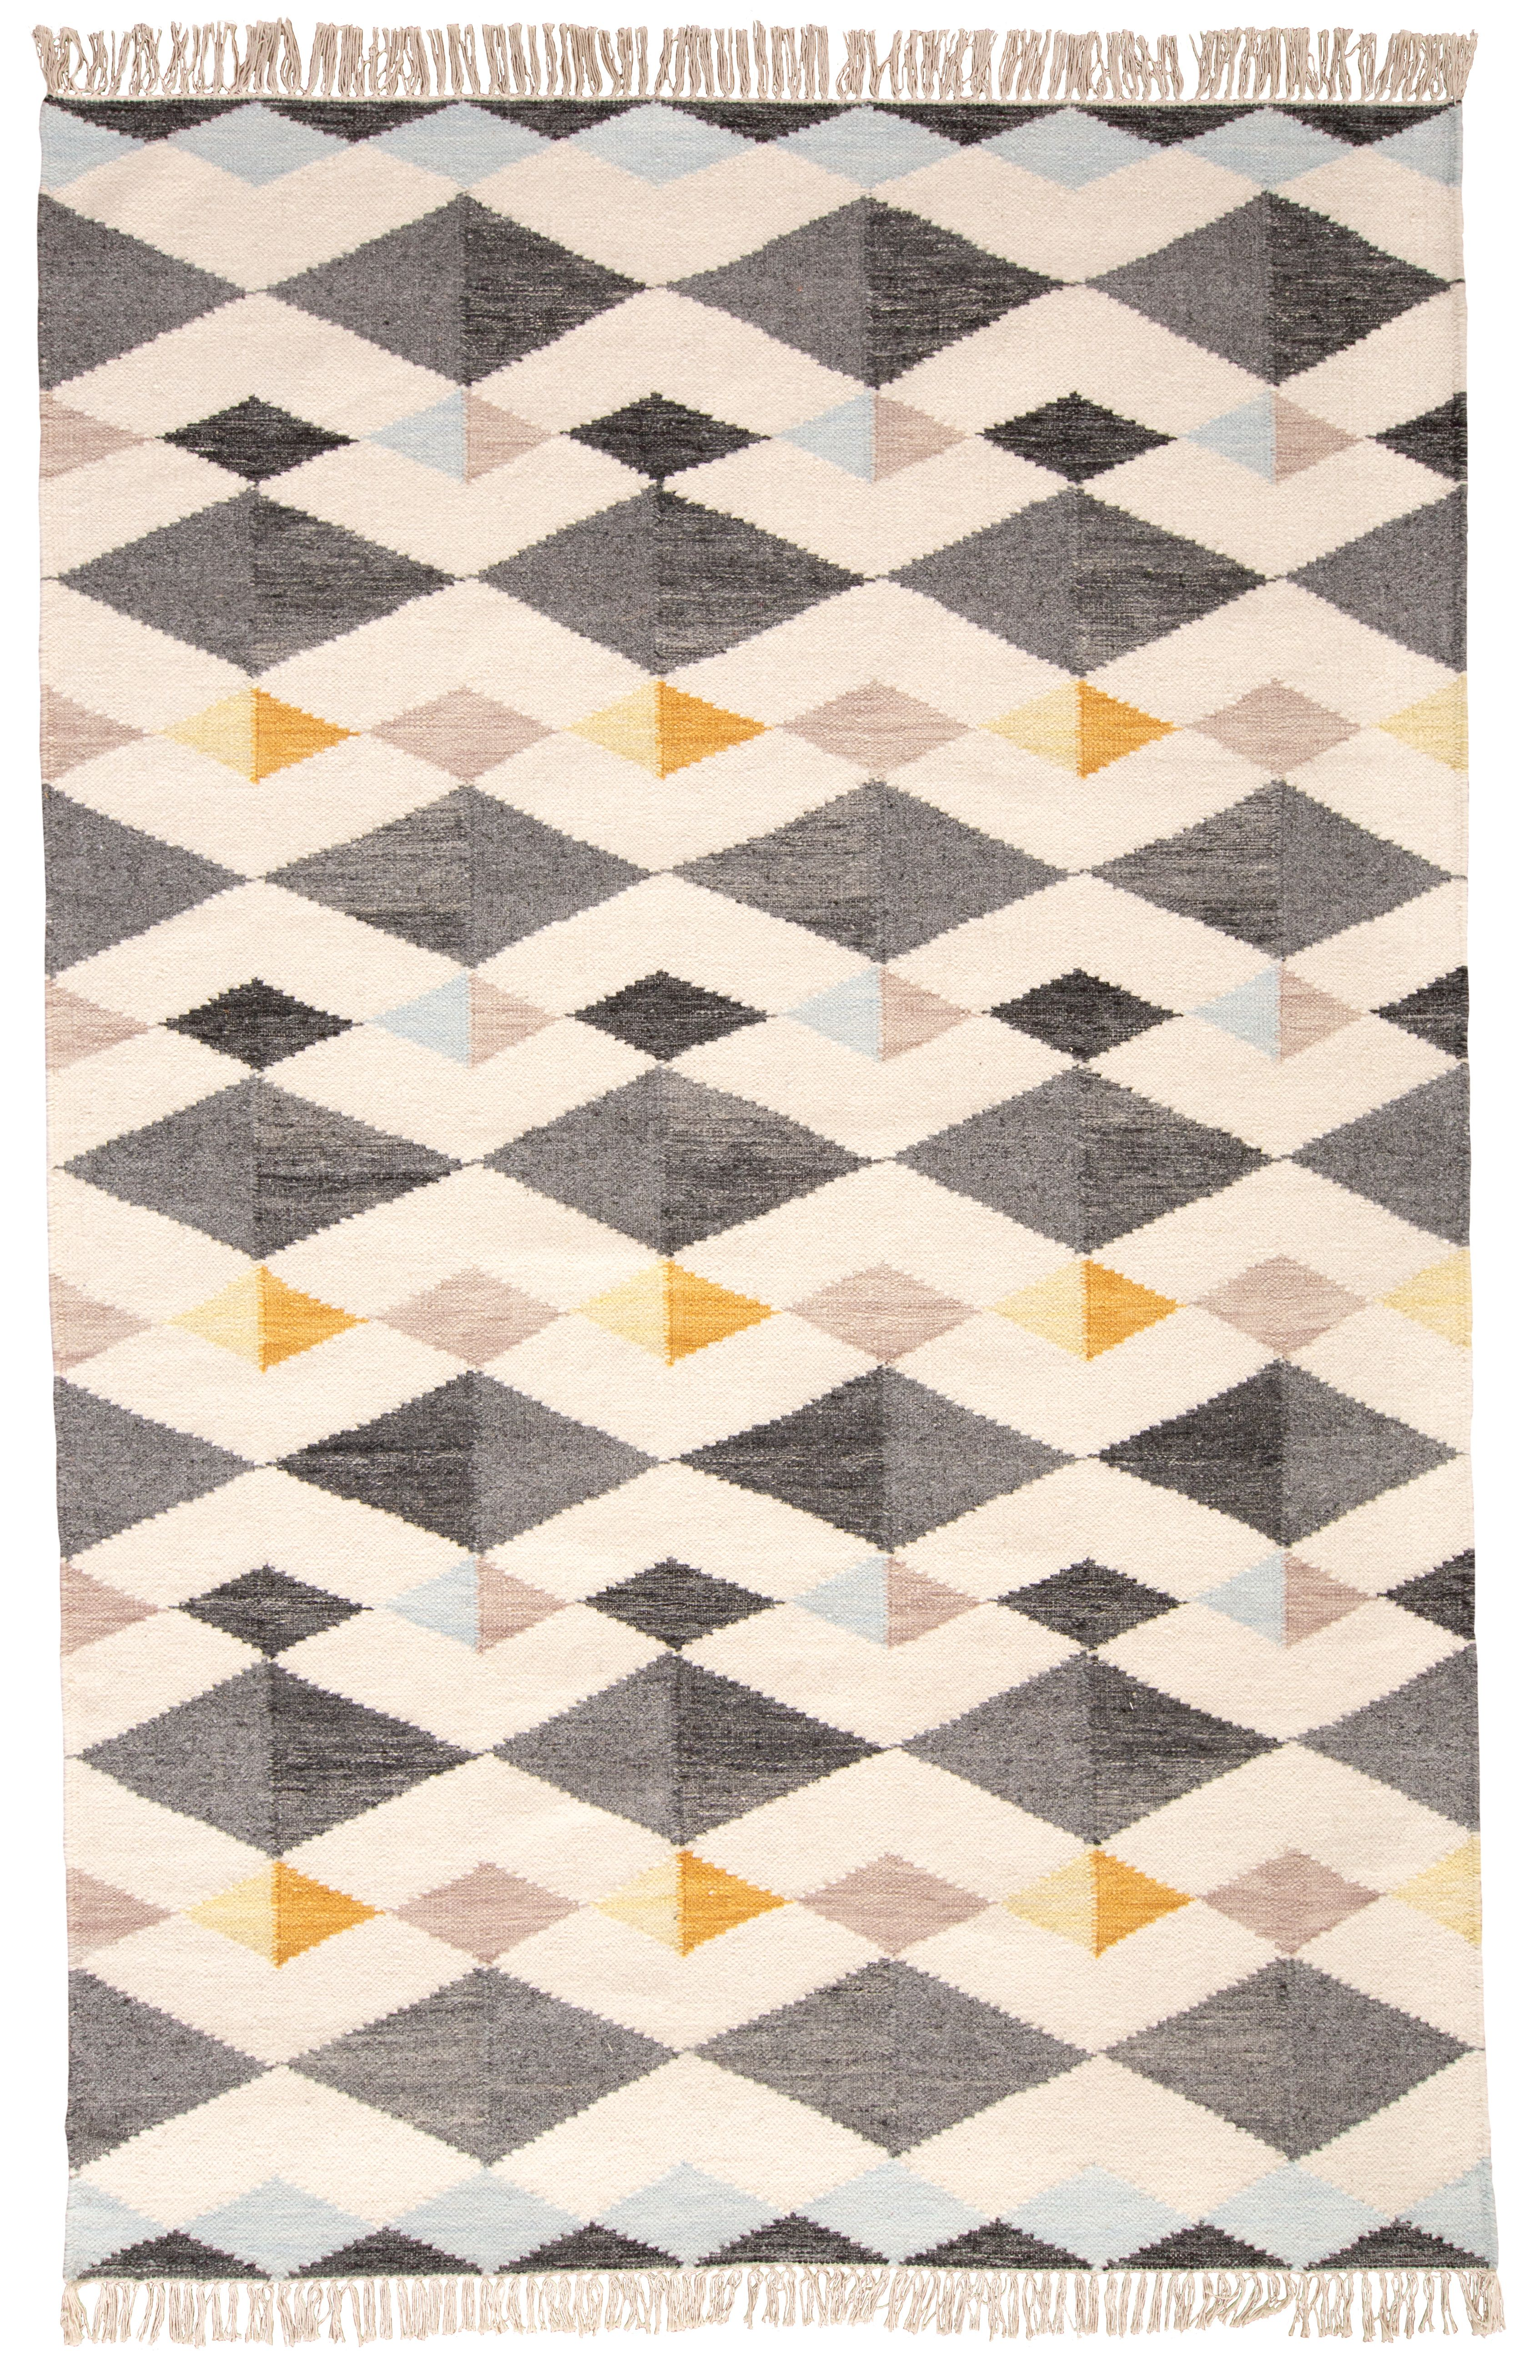 Wool Hearth Rugs Explore The Designer Area Collection By Lily Today And Discover Sumptuously Soft For Every Room In Your Home Fi In 2020 Hearth Rug Rugs On Carpet Rugs